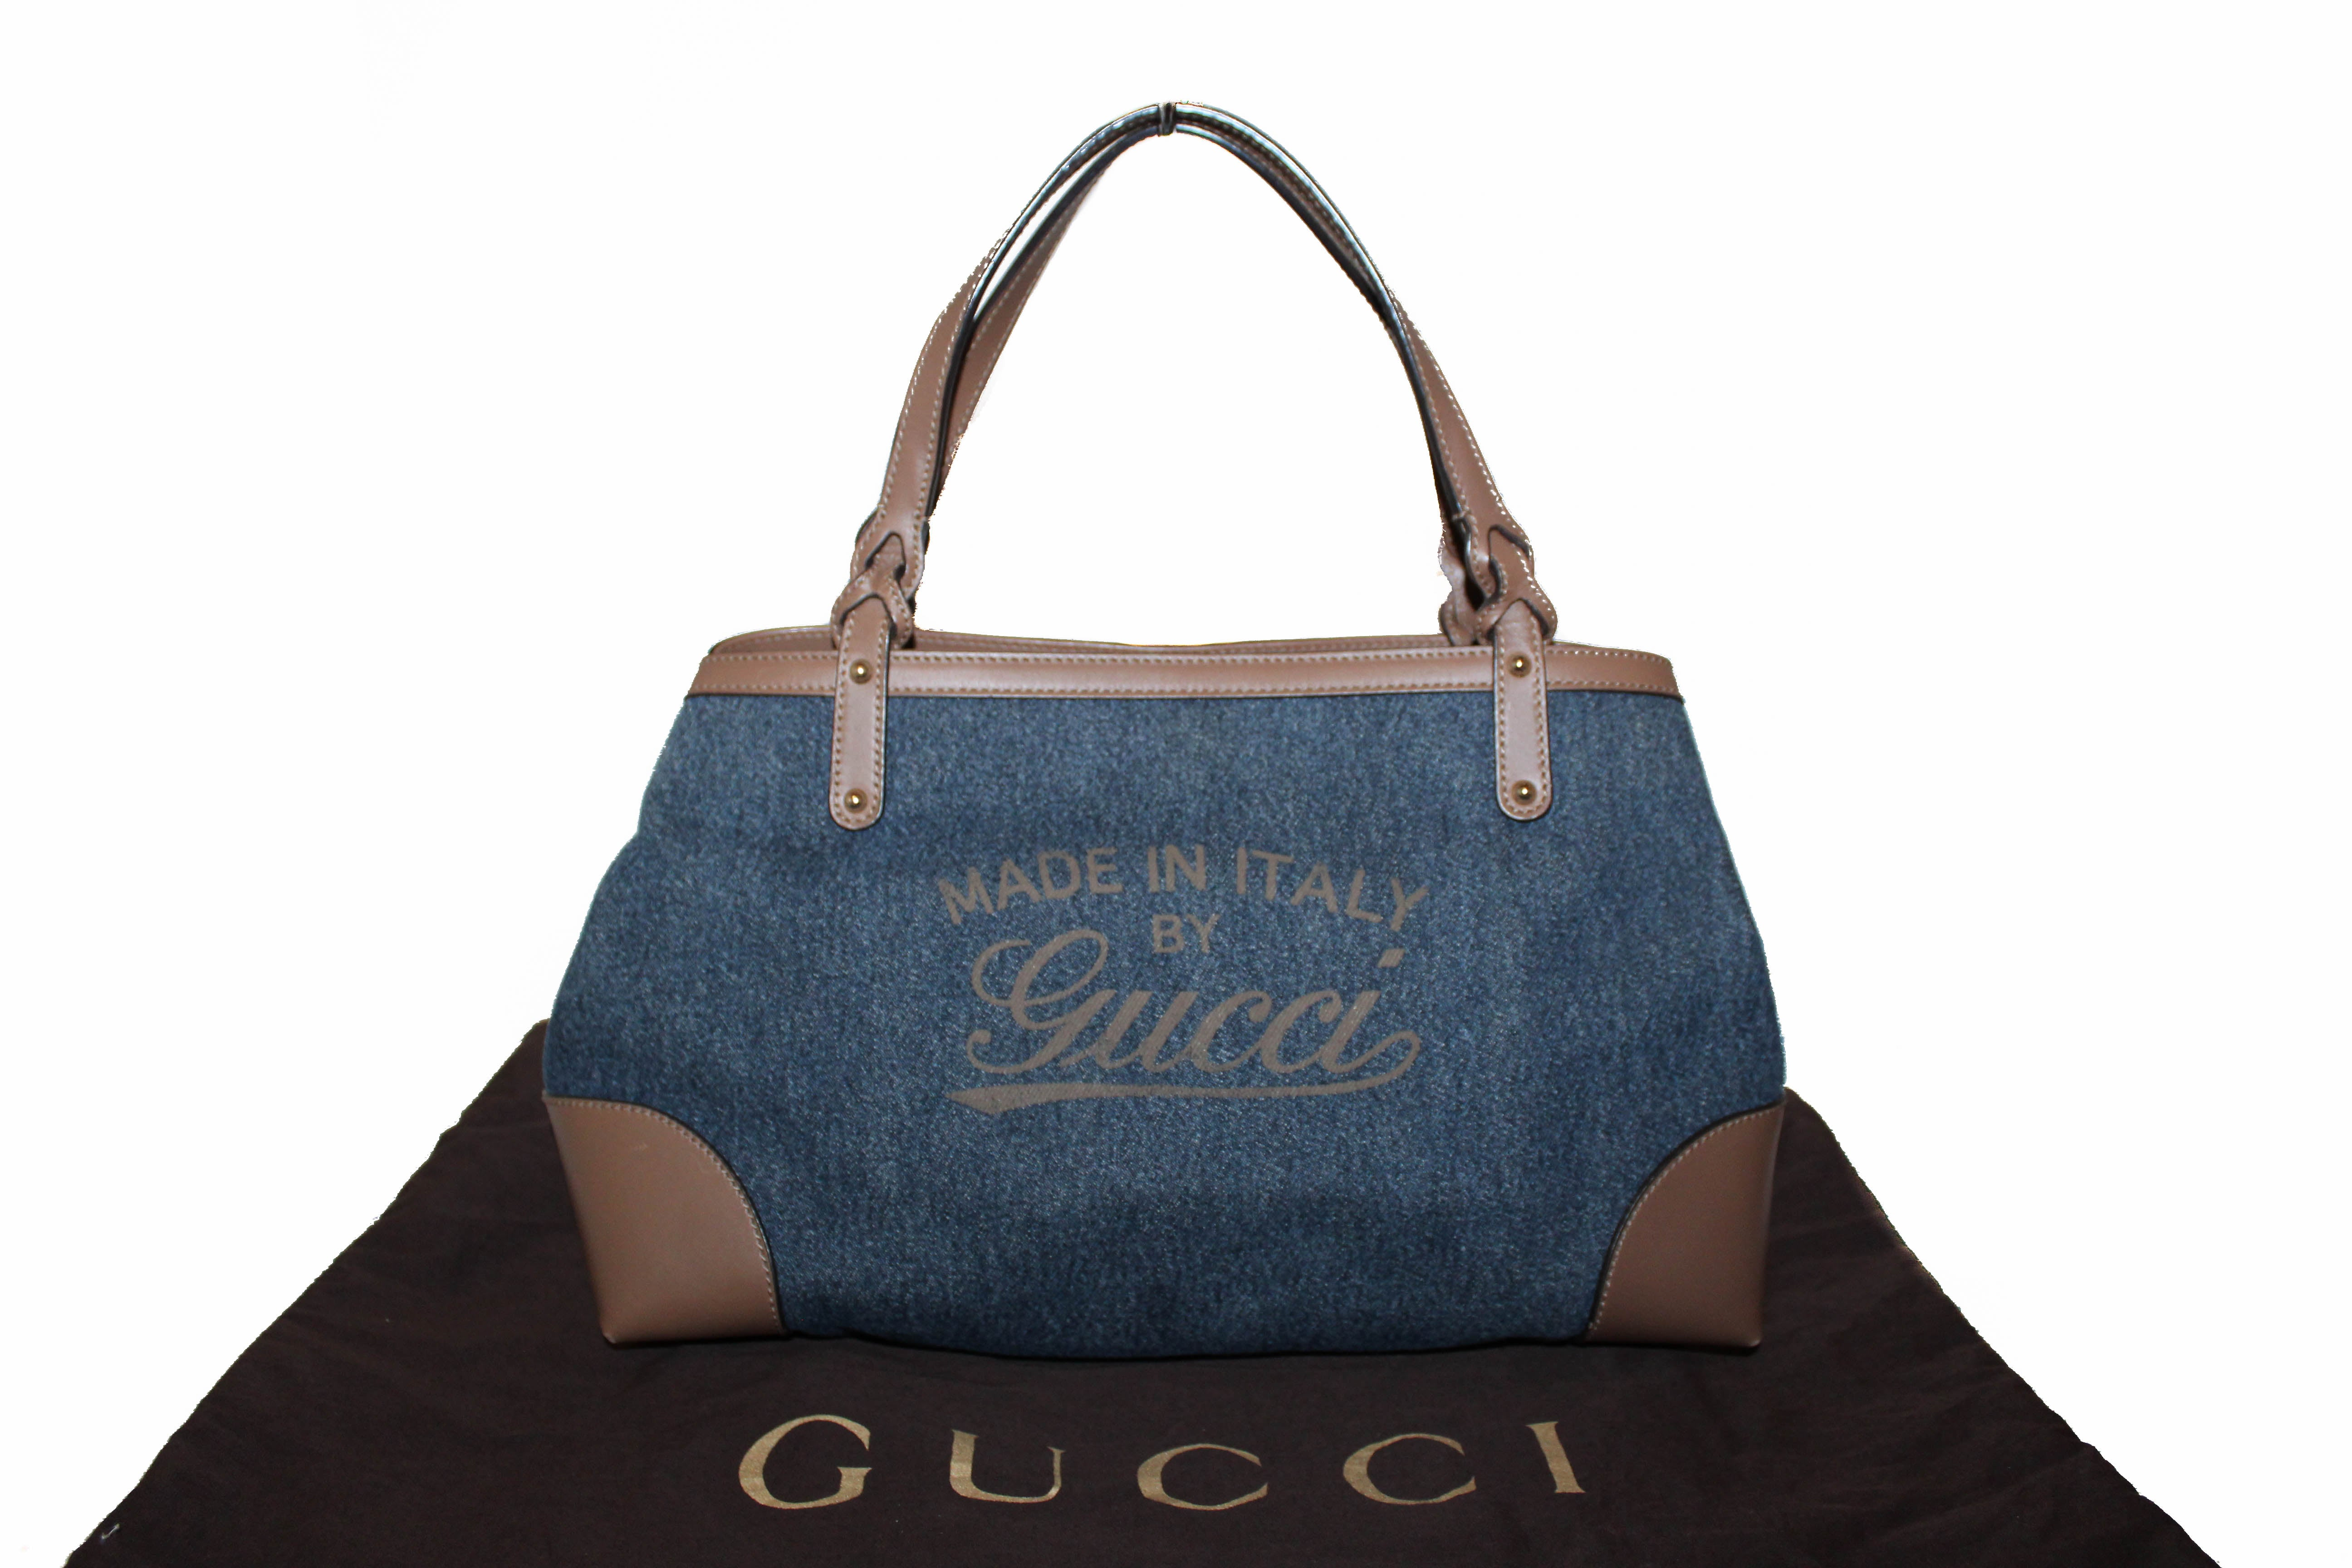 Authentic Gucci Blue Denim Brown Leather Made in Italy by Gucci Tote Bag